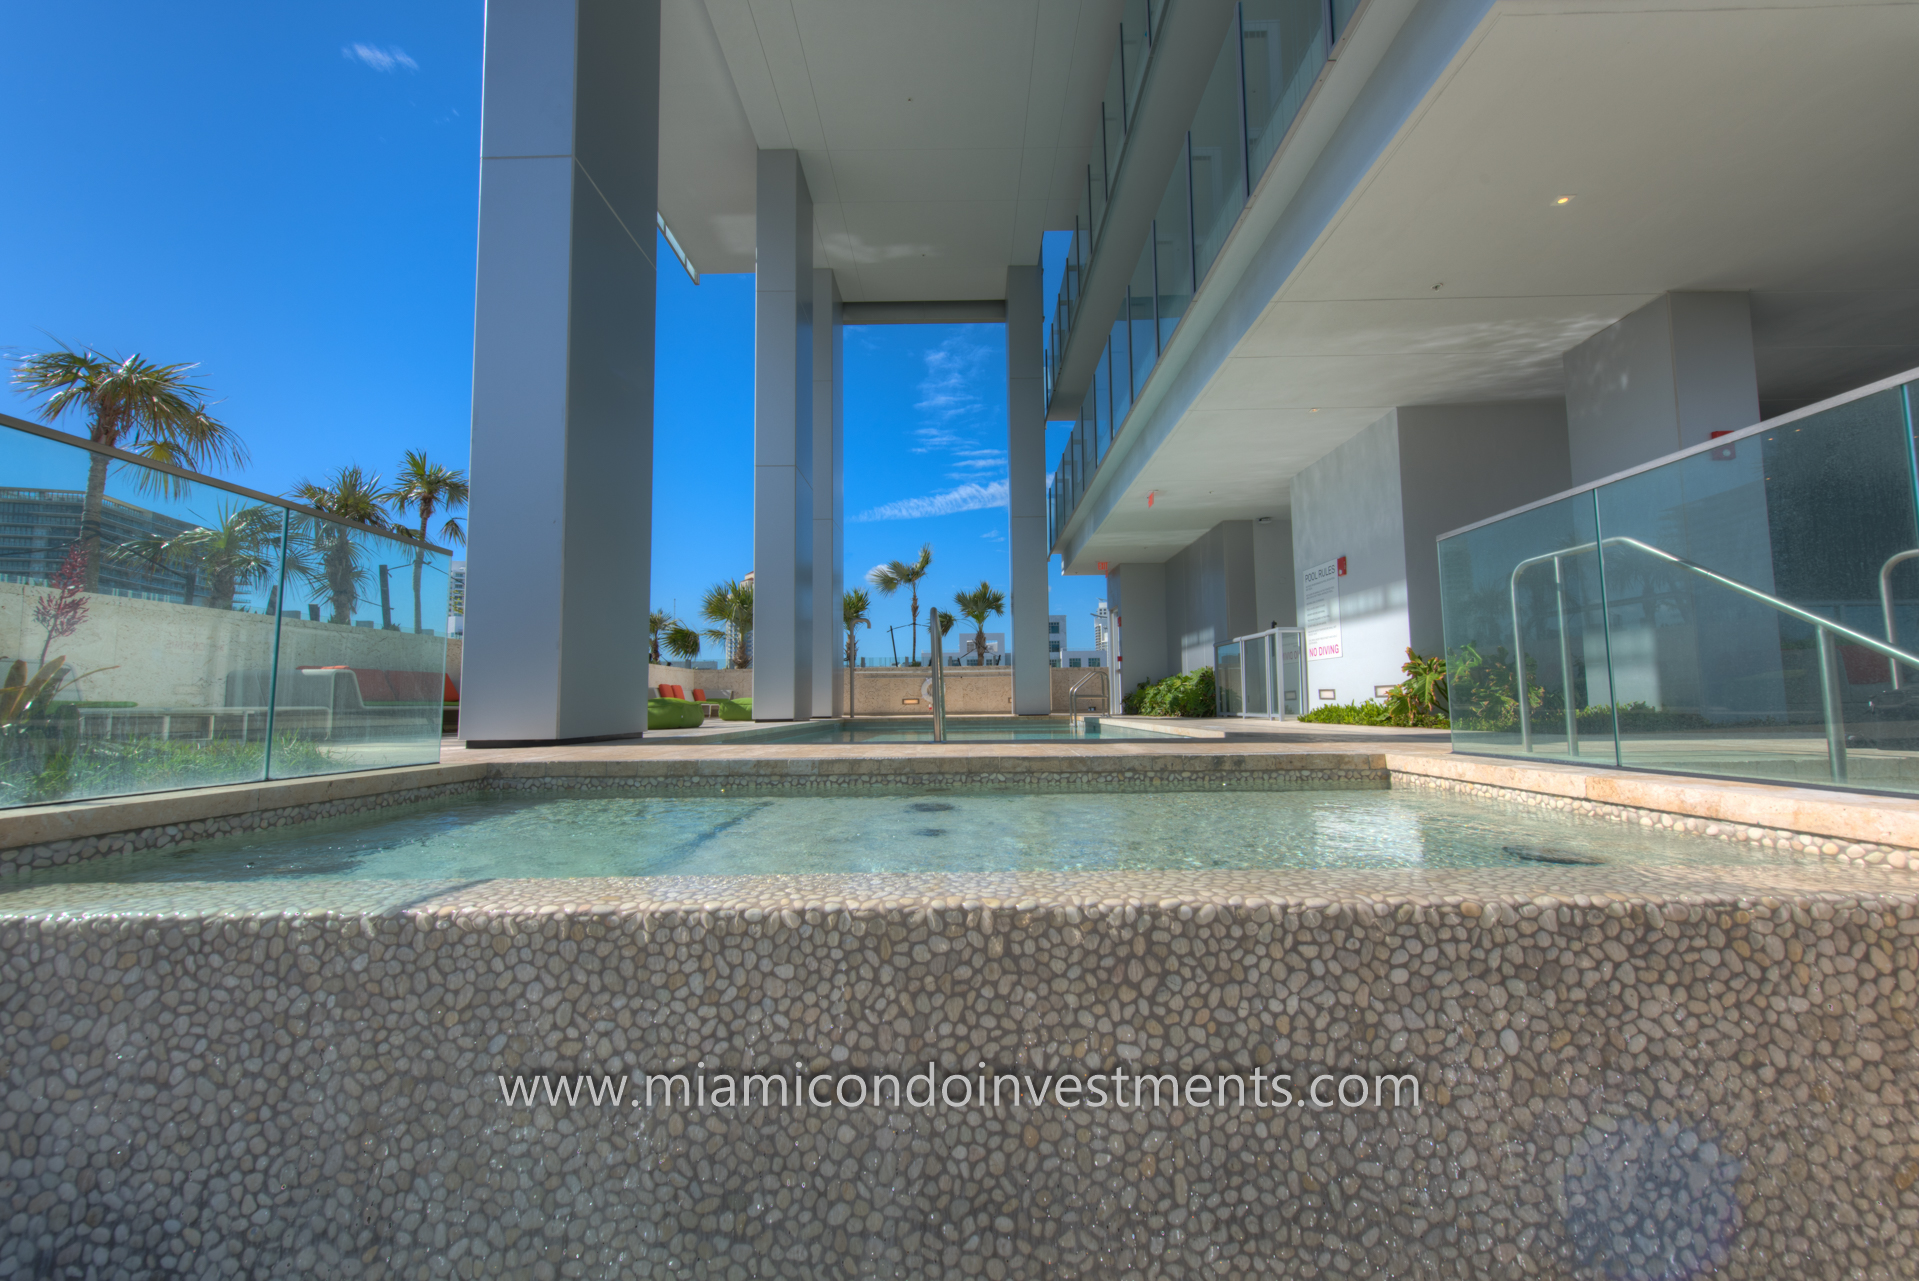 GLASS Miami Beach pool deck with landscape design by Raymond Jungles